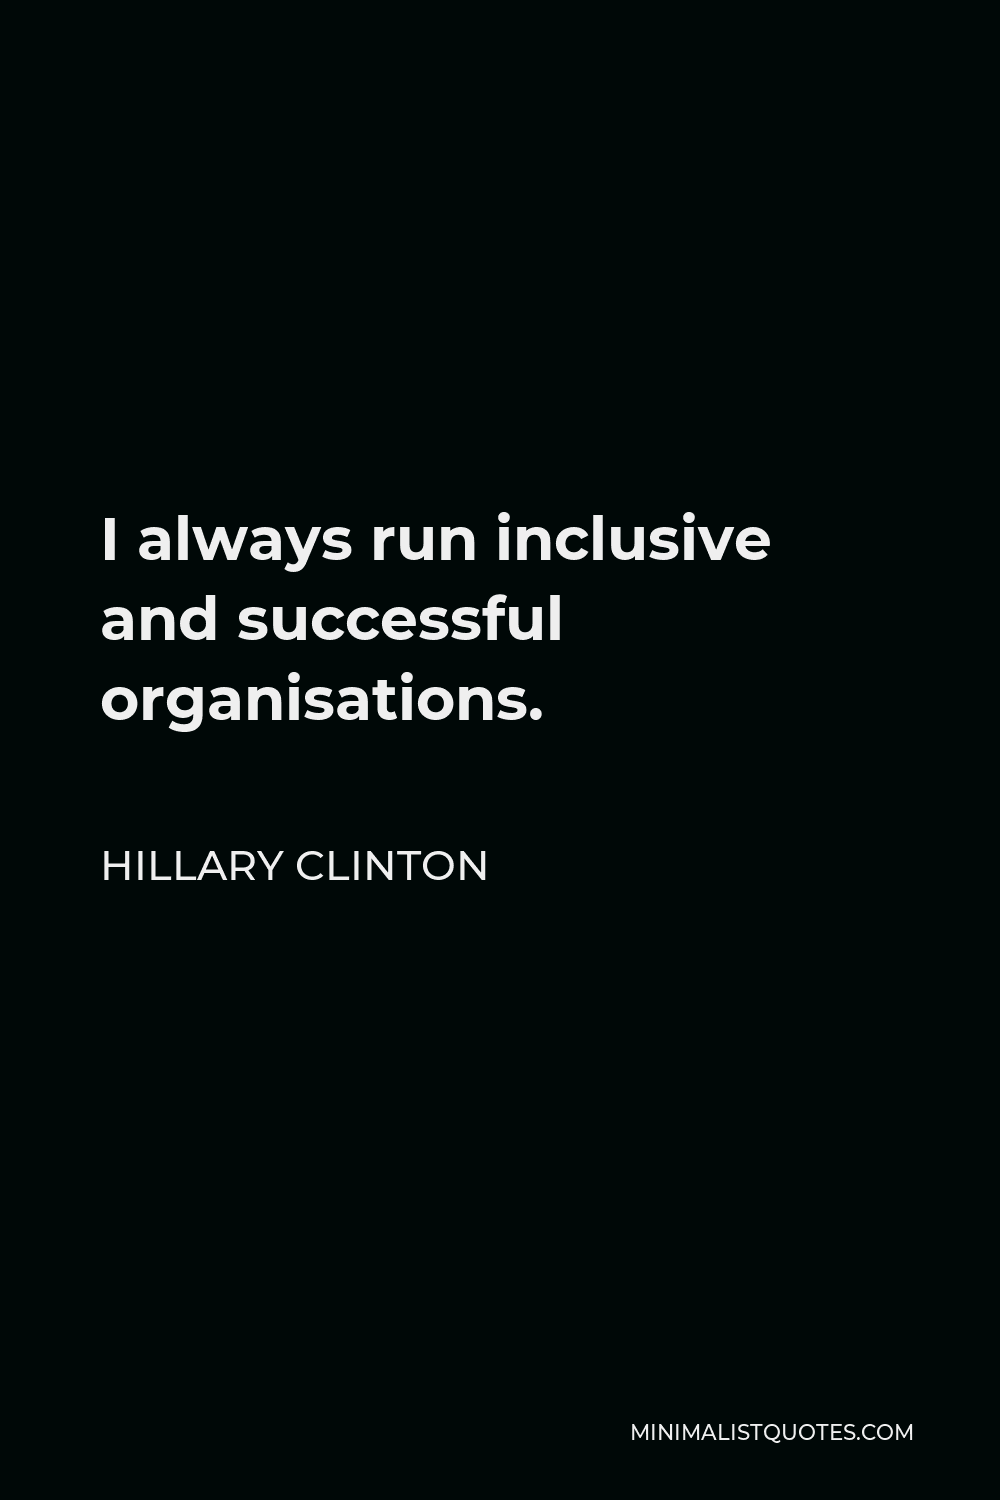 Hillary Clinton Quote - I always run inclusive and successful organisations.